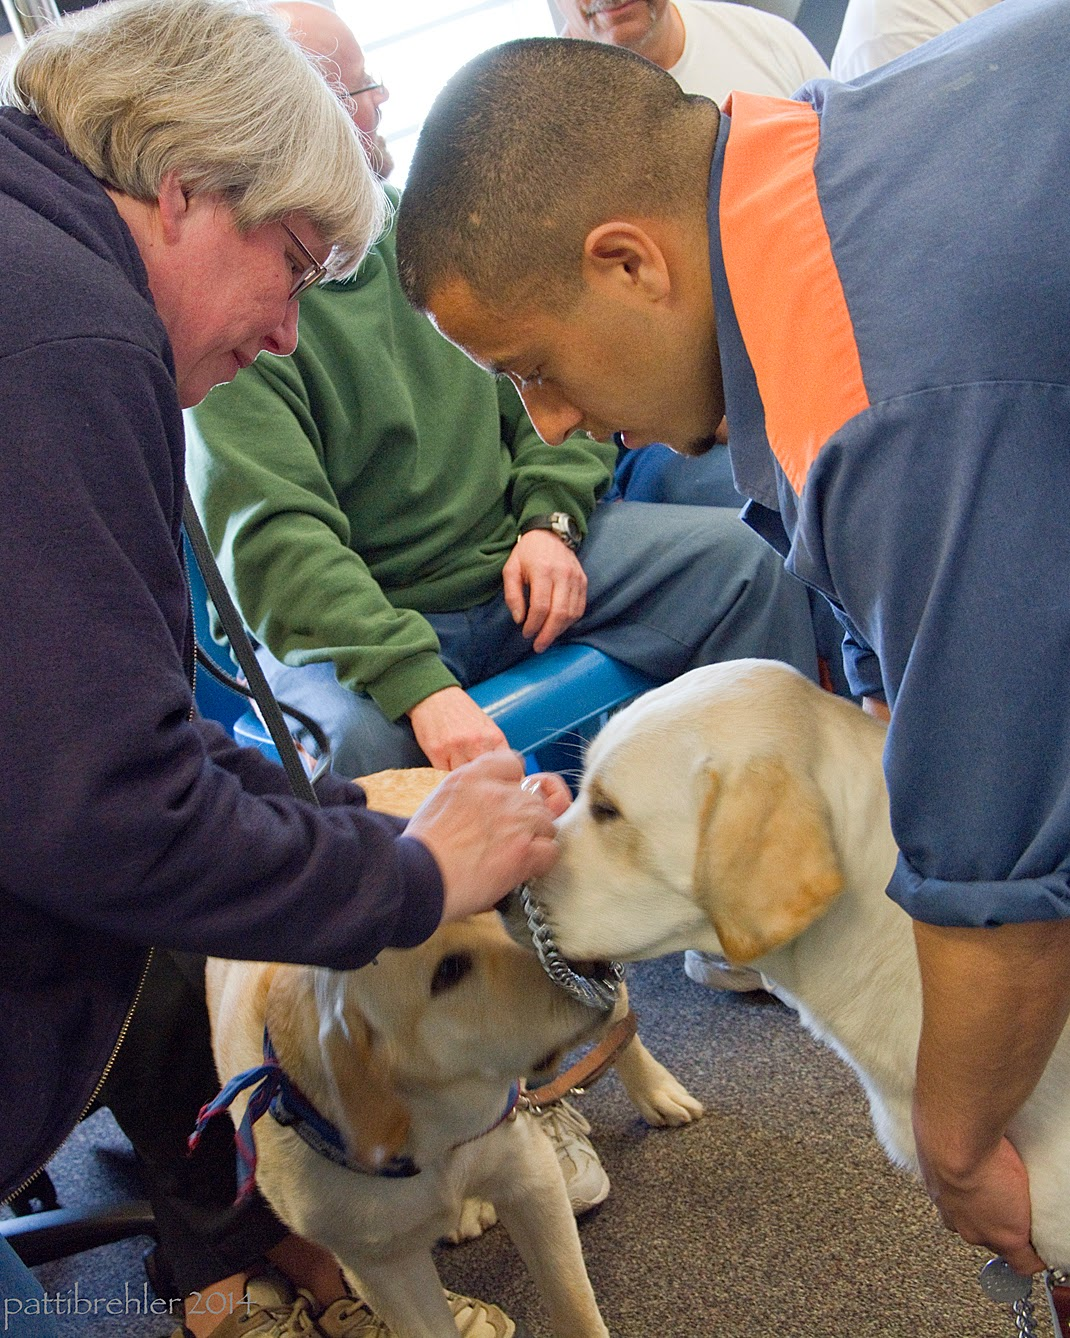 A close shot of a woman (on the left) wearing a purple sweatshirt putting a chain collar over the nost of a yellow lab, which is being held by the man on the right. He is wearing the blue prison uniform. Both the woman and the man are bending toward the middle over the lab. A second yellow lab is sneaking into the middle of things from the left, its leash being held by a man behind wearing a green sweatshirt and blue pants, sitting down on a blue plastic chair. This man's head is out of view.